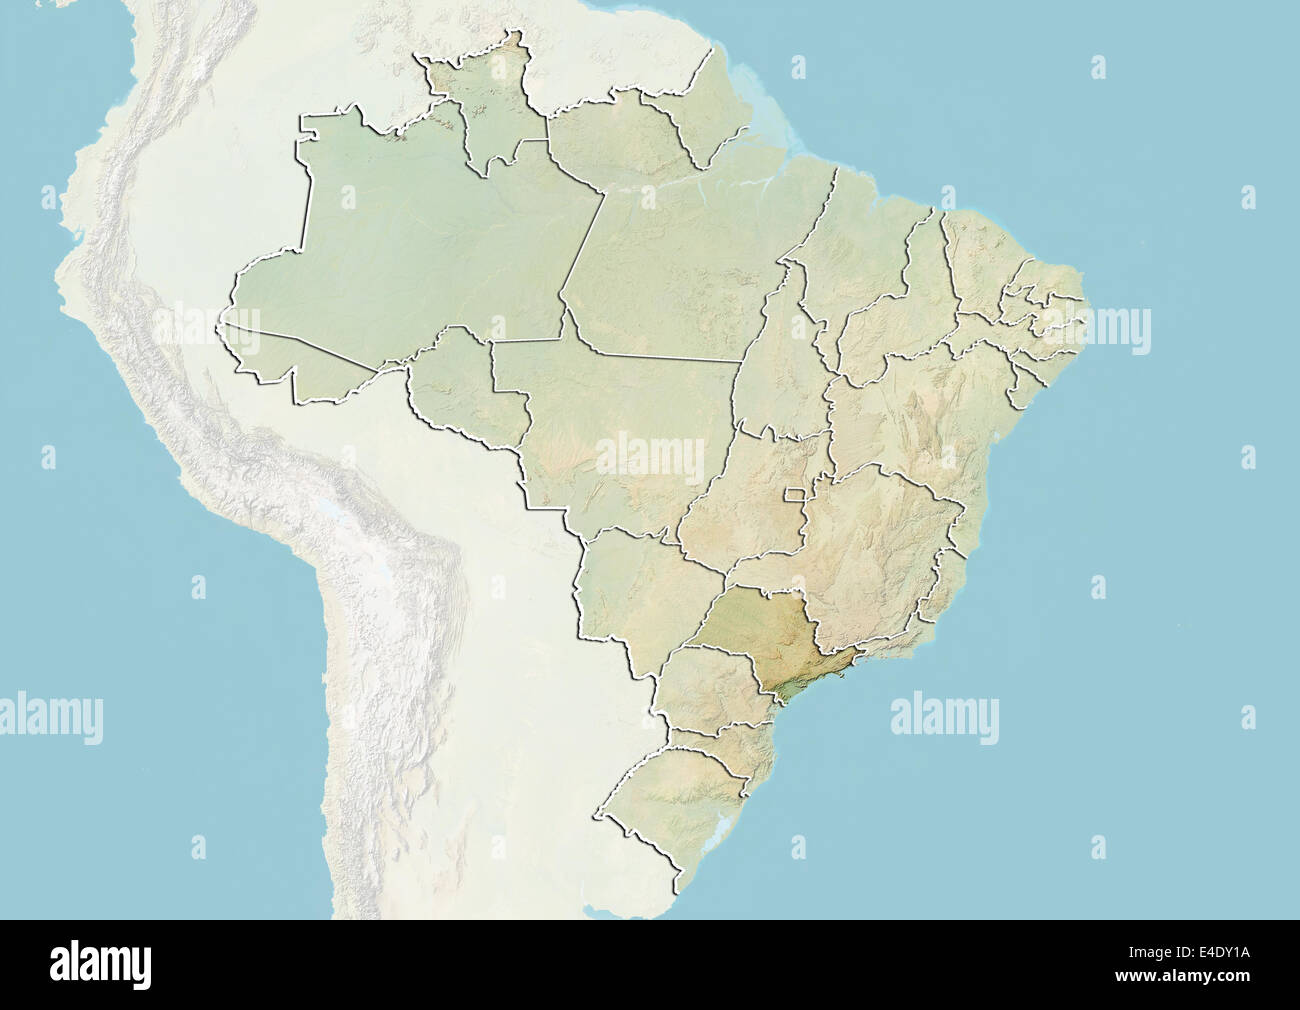 Map Of Sao Paulo State on map of sri lanka, map of maldives, map of saudi arabia, map of japan, map of thailand, map of french polynesia, map of ecuador, map of afghanistan, map of paraguay, map of lithuania, map of iraq, map of pakistan, map of tasmania, map of cyprus, map of cornwall, map of morocco, map of chile, map of brasilia, map of venezuela, map of shanghai,